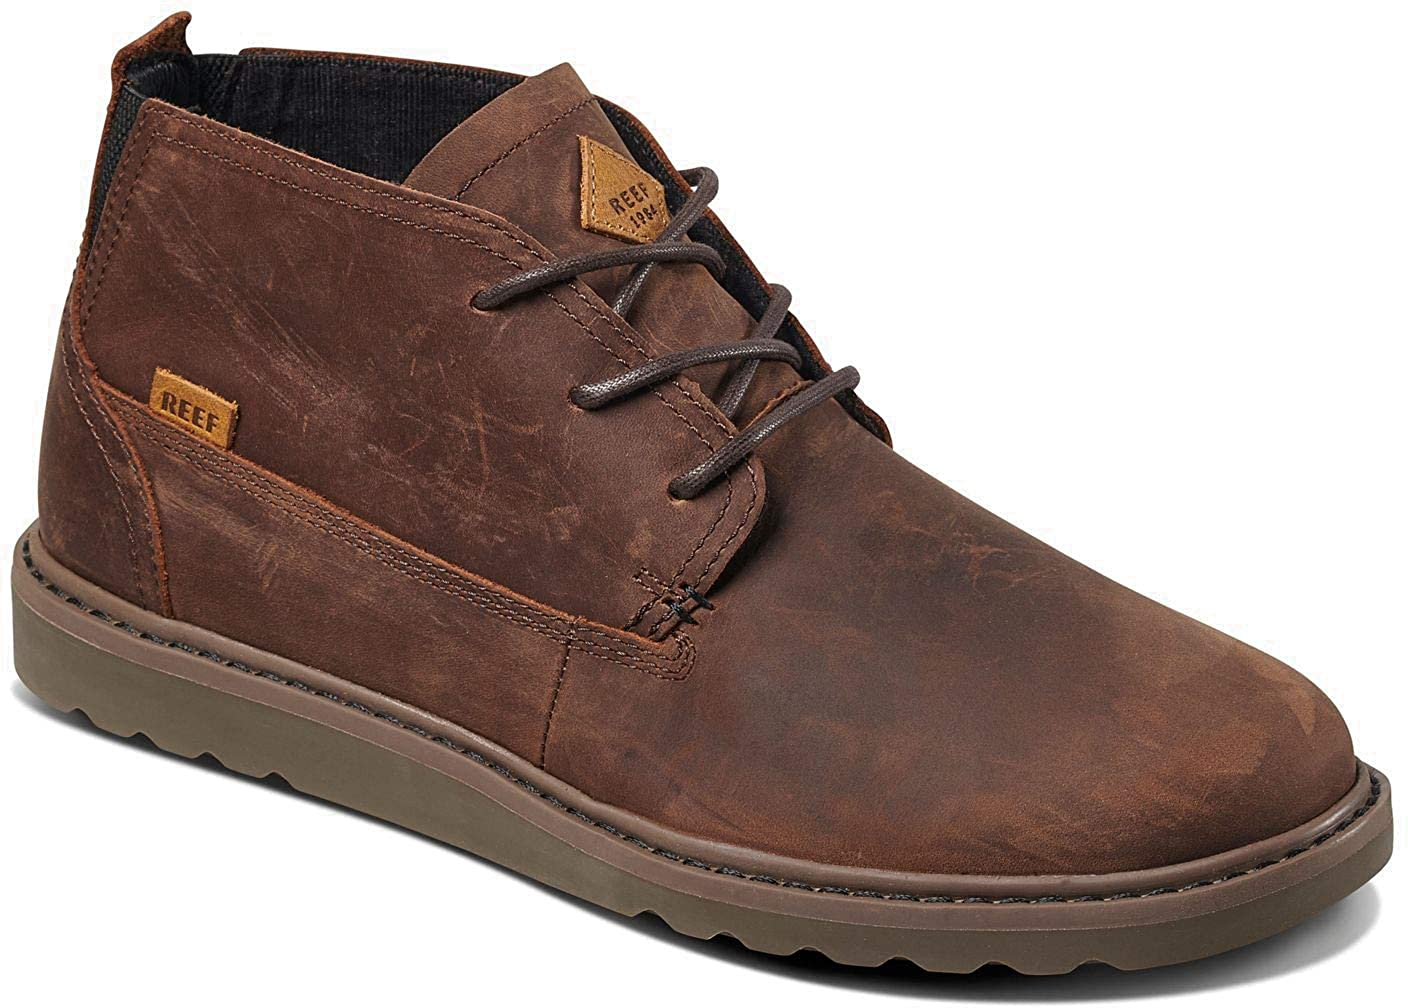 Chocolate Brown Reef Mens Voyage Boot Le Chukka Boot